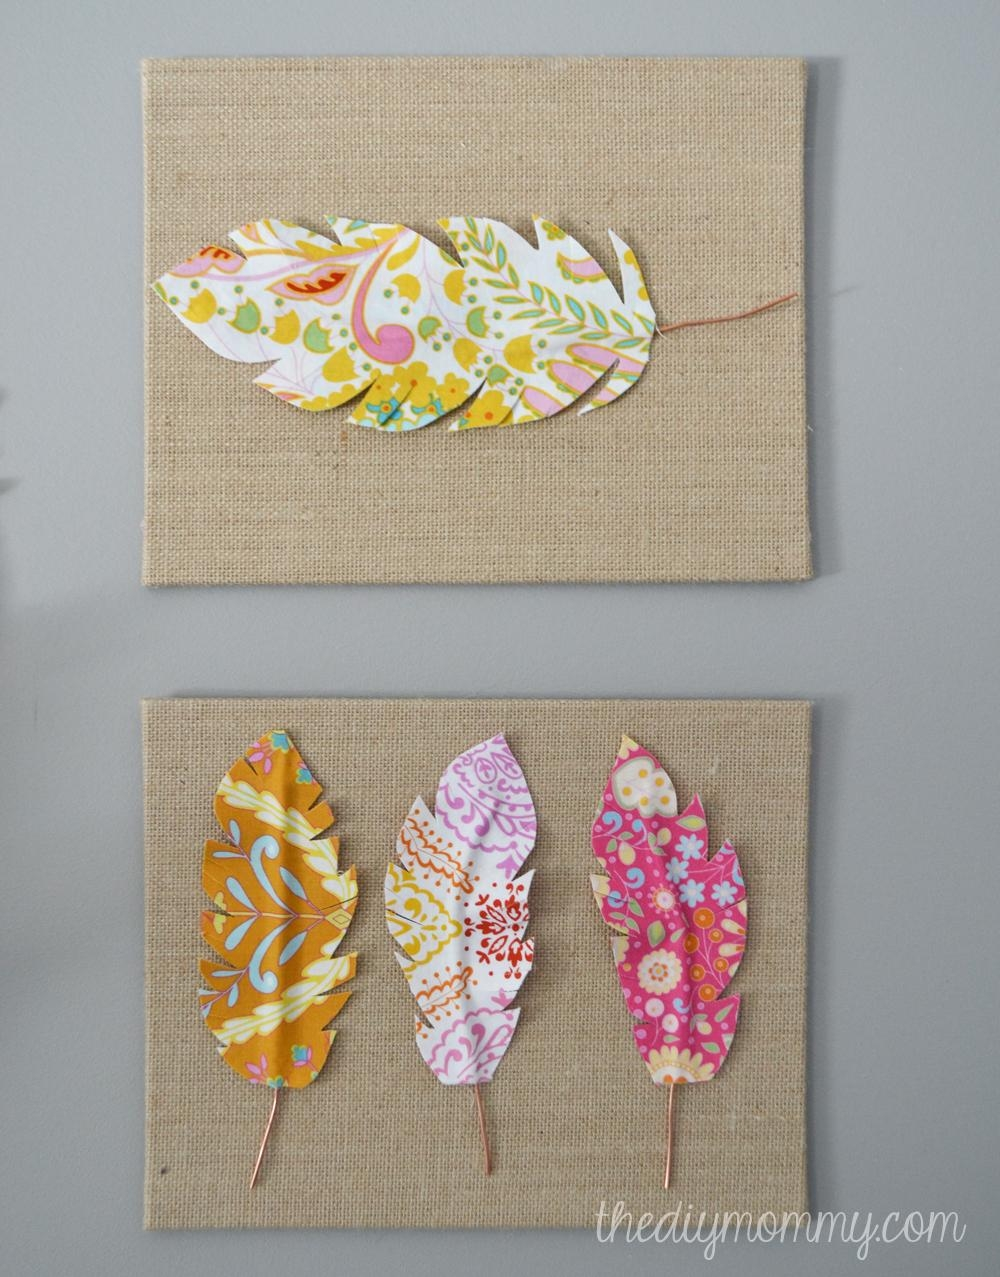 Make Fabric Feather Wall Art | The Diy Mommy Throughout Fabric Wall Art (View 7 of 20)